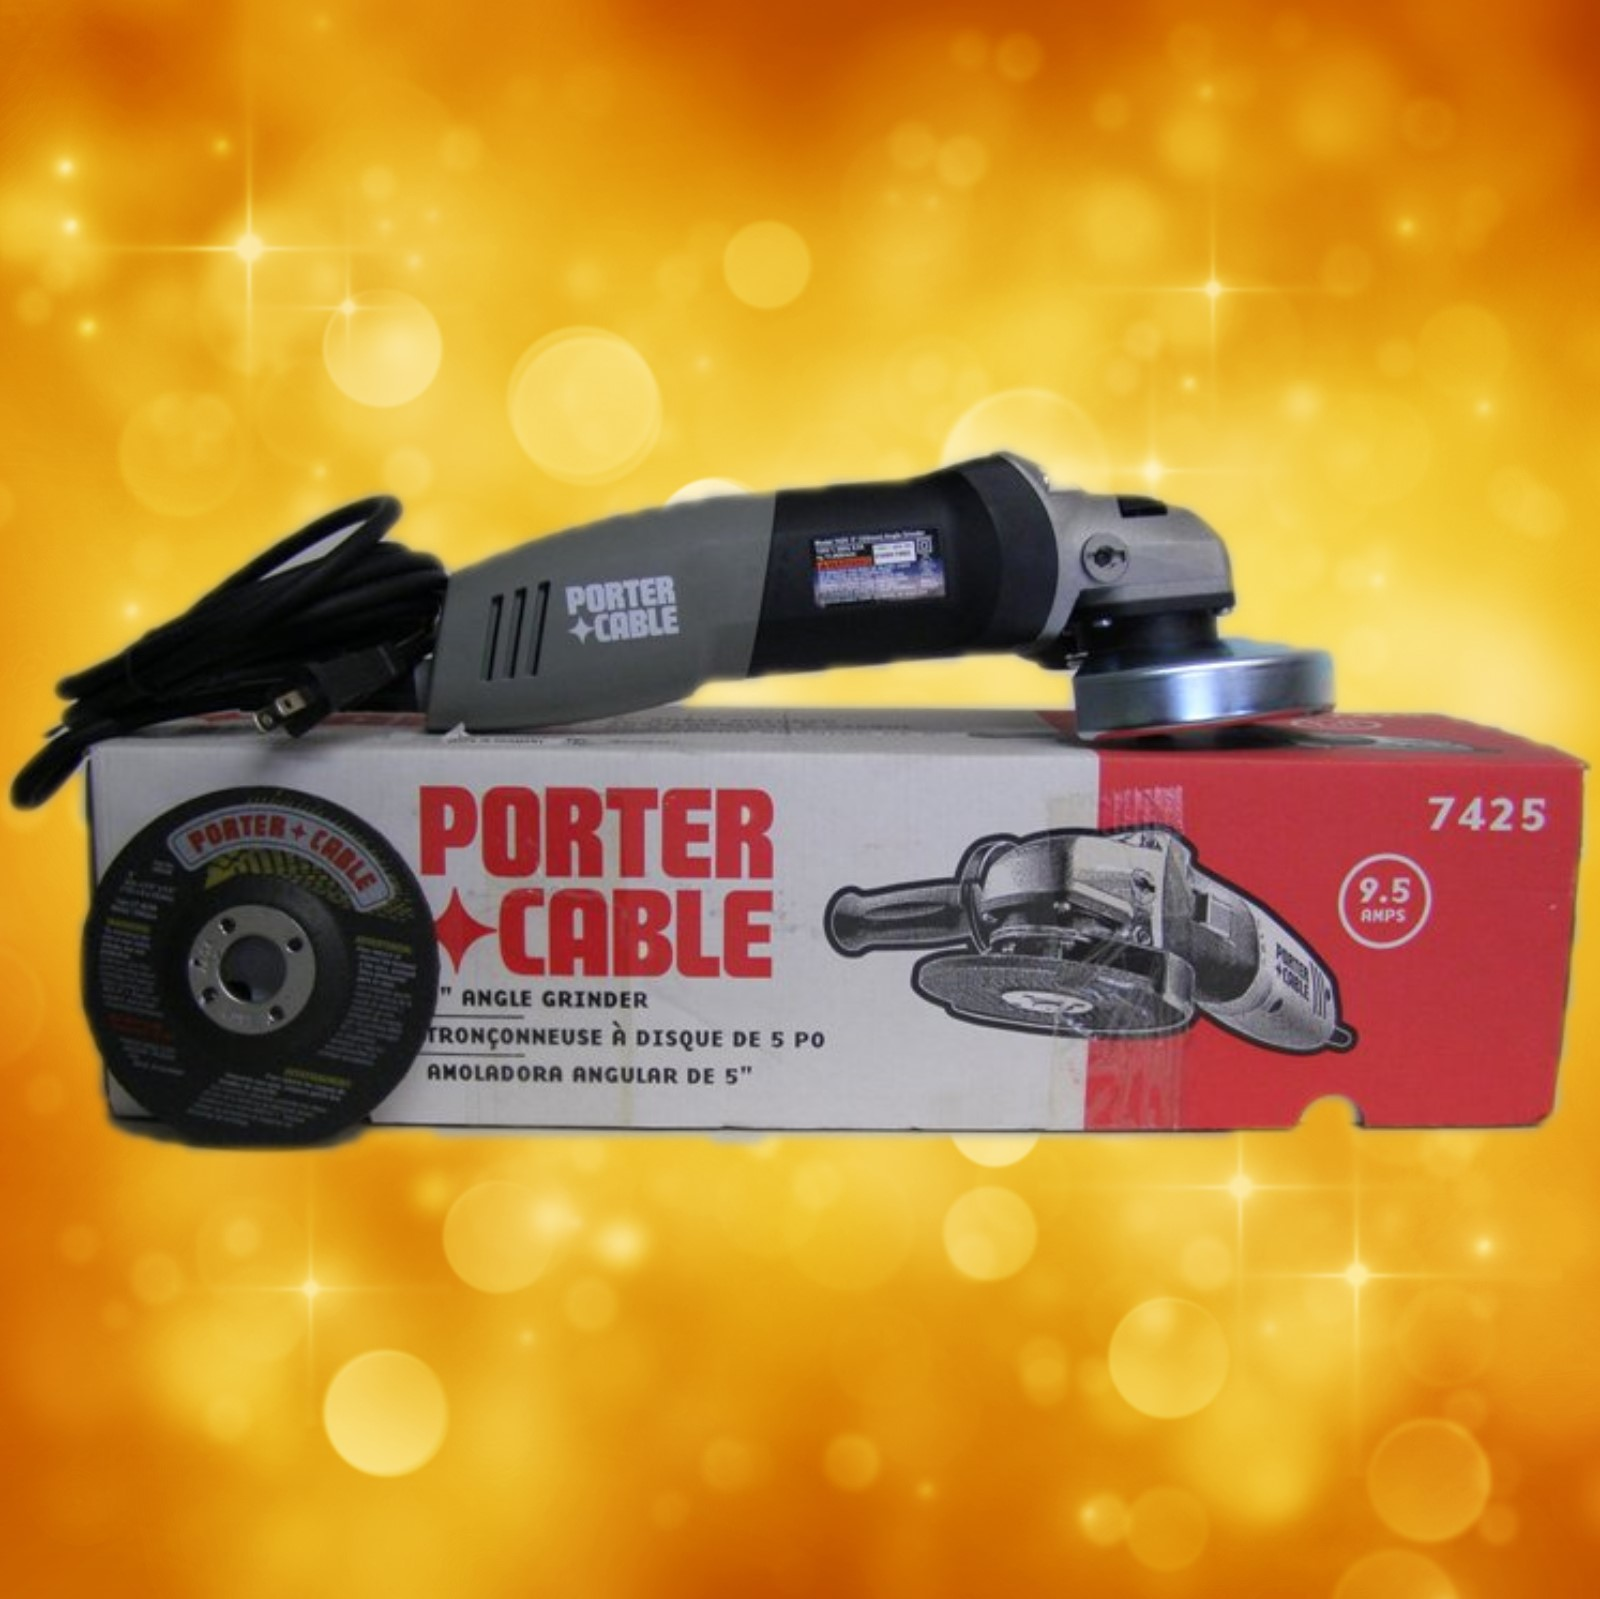 "Porter Cable Angle Grinder 7425 Porter-Cable 5"" Angle Grinder 7425"